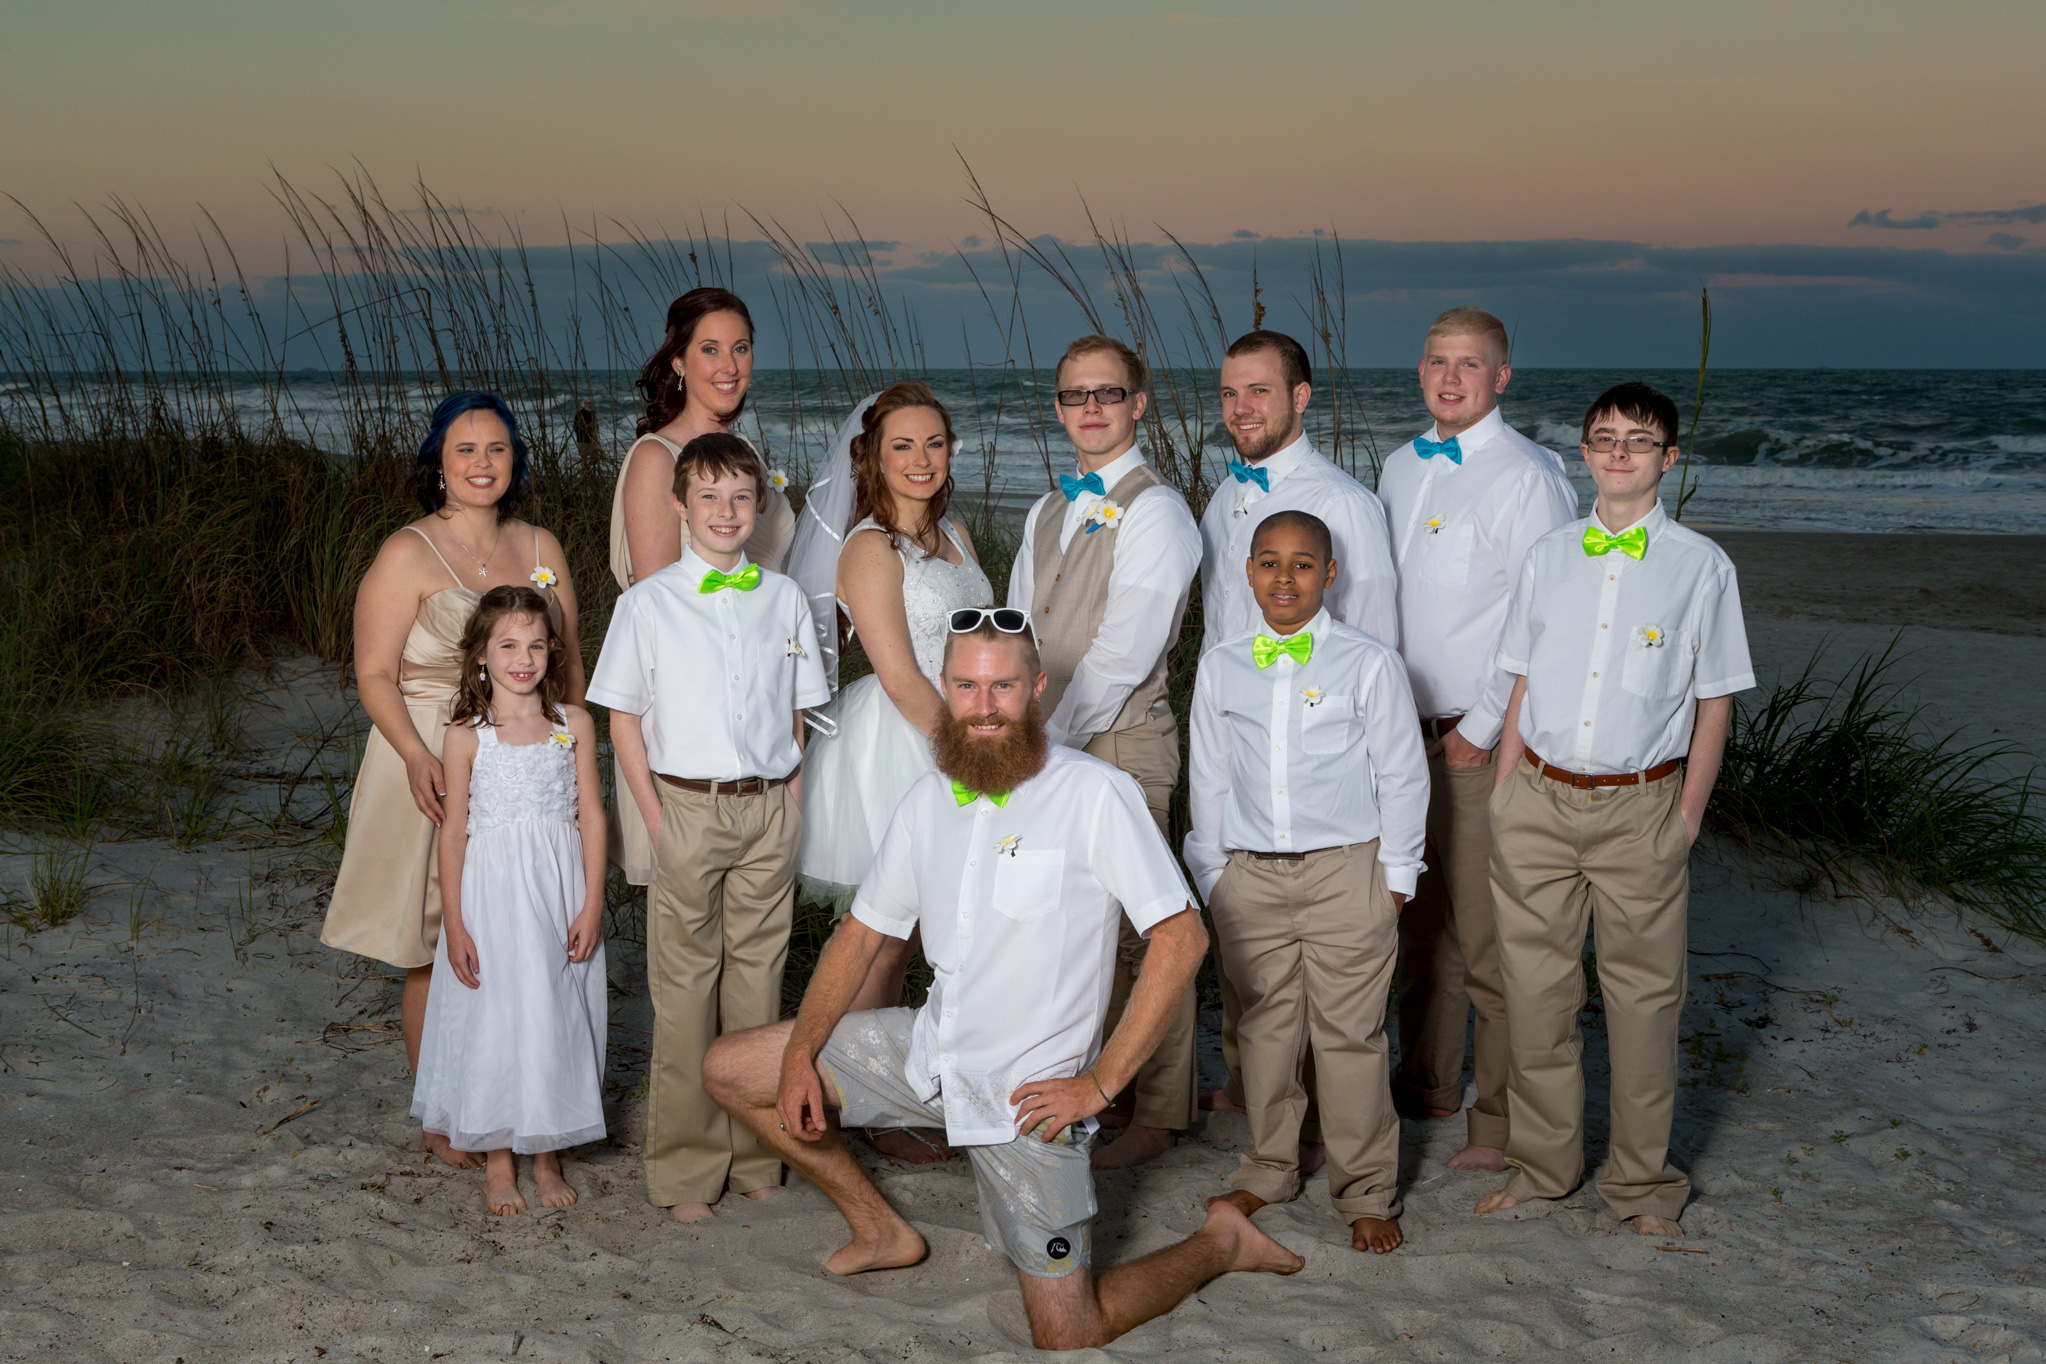 beach_wedding_bridal_party_formal_photography